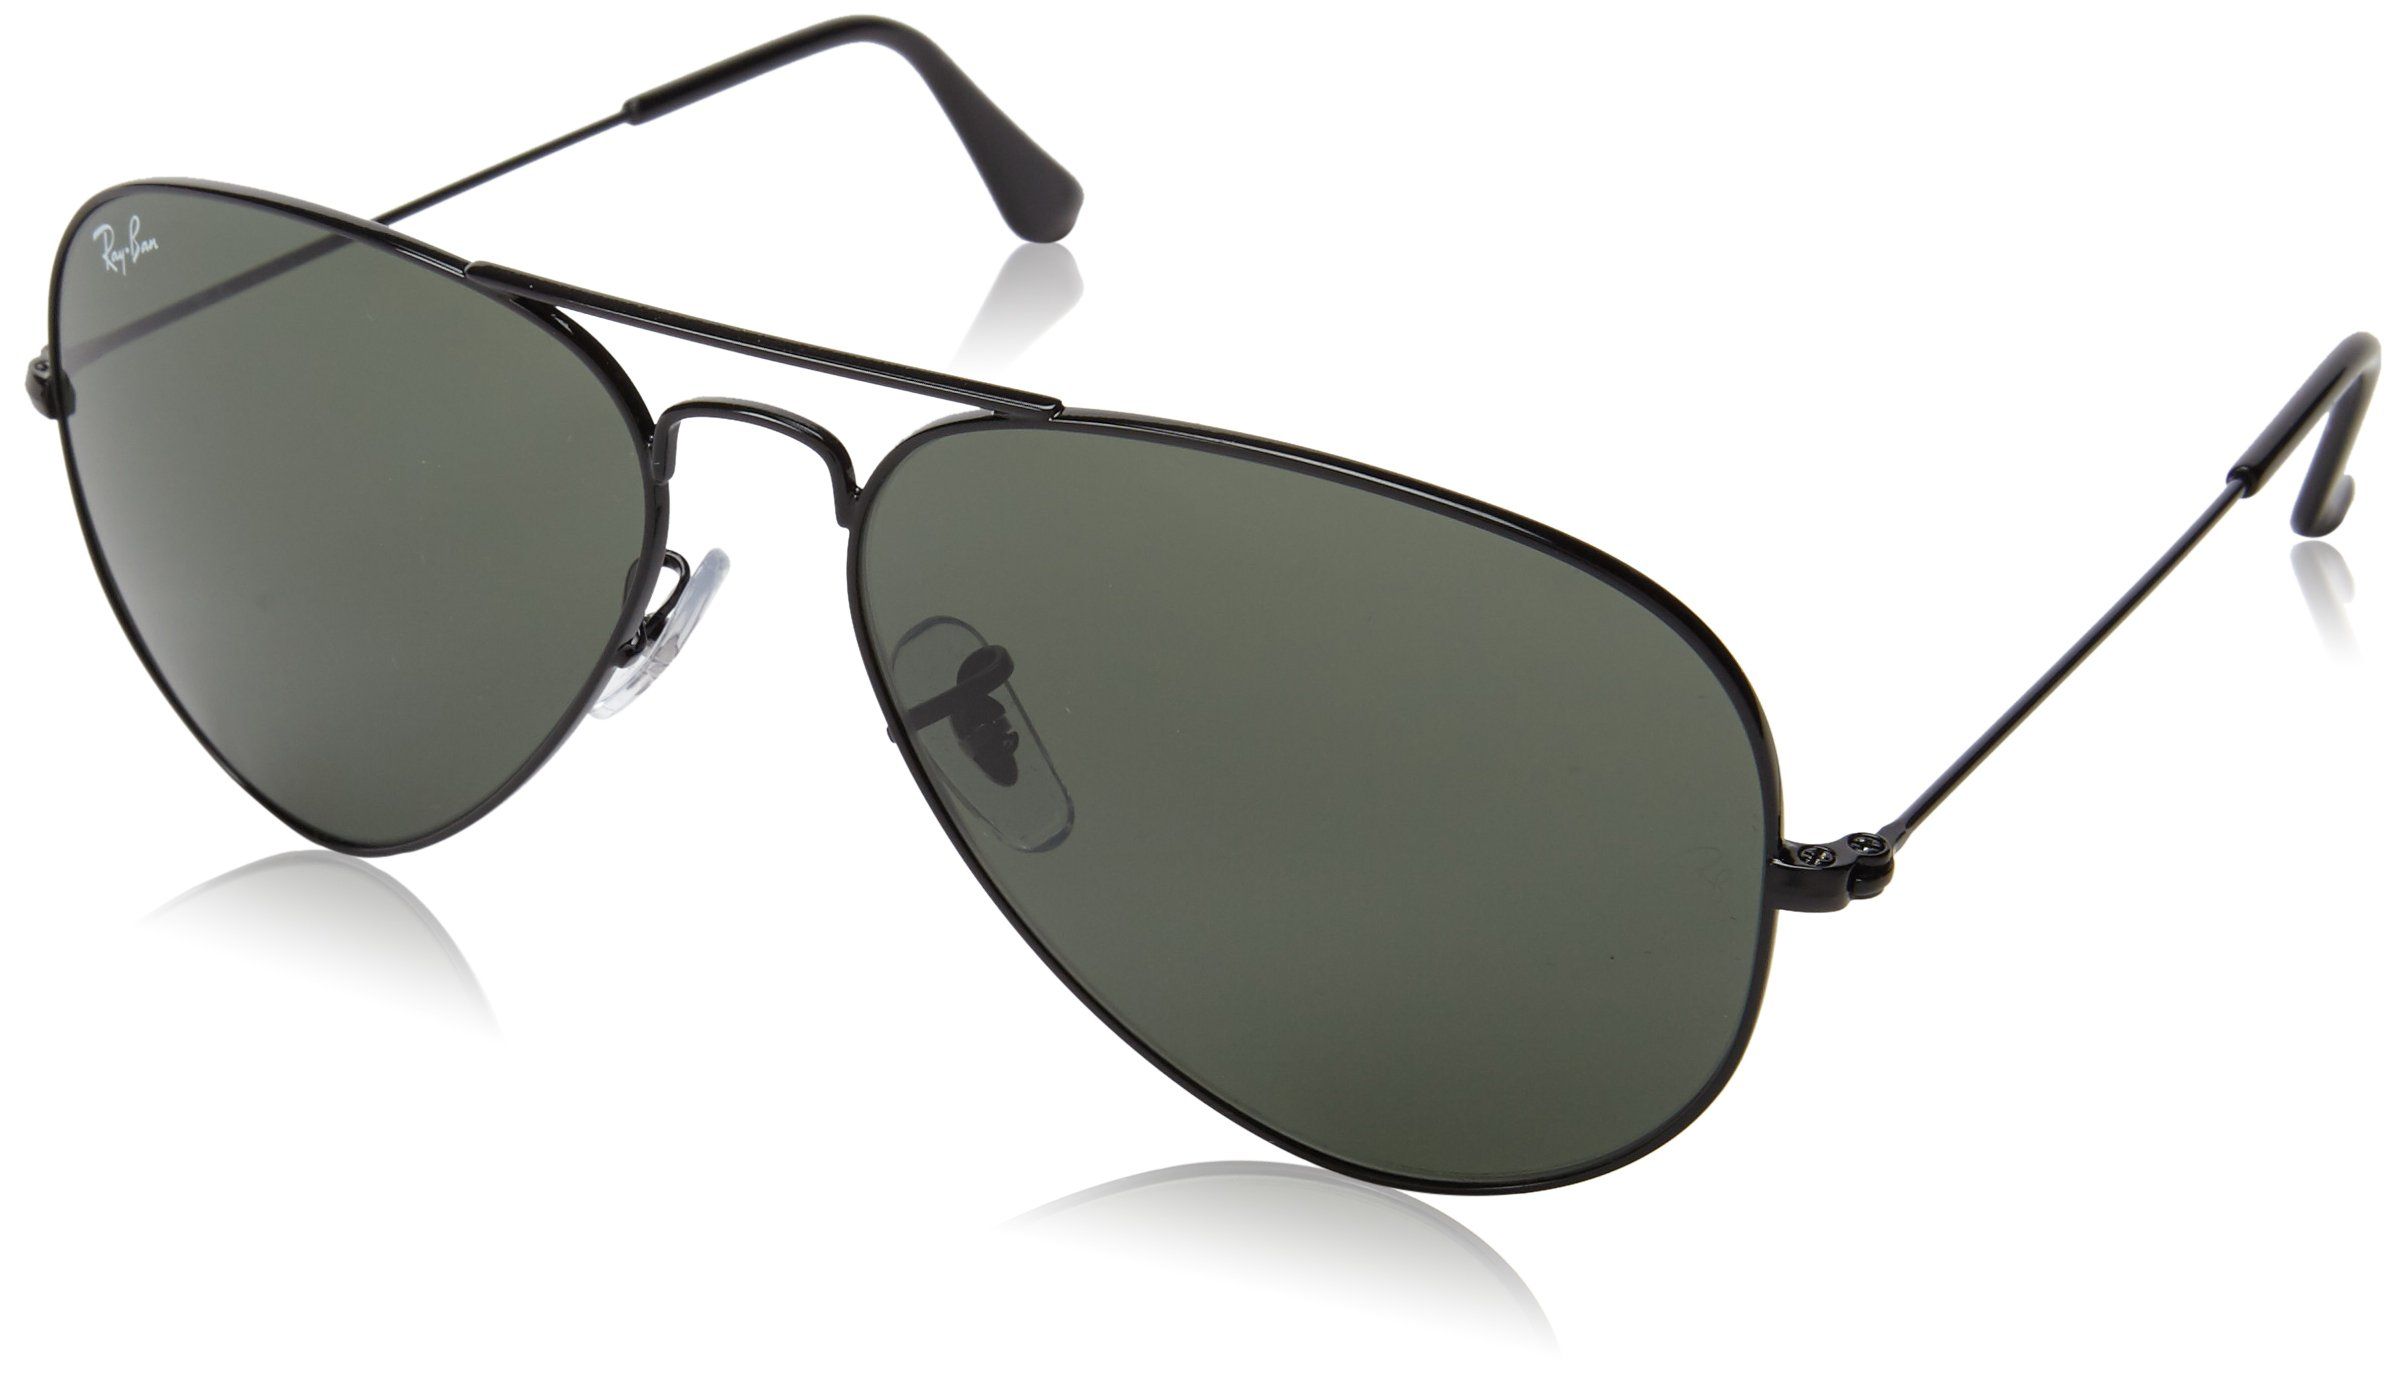 Ray-Ban RB3025 Aviator Sunglasses, Black/Grey, 58 mm by Ray-Ban